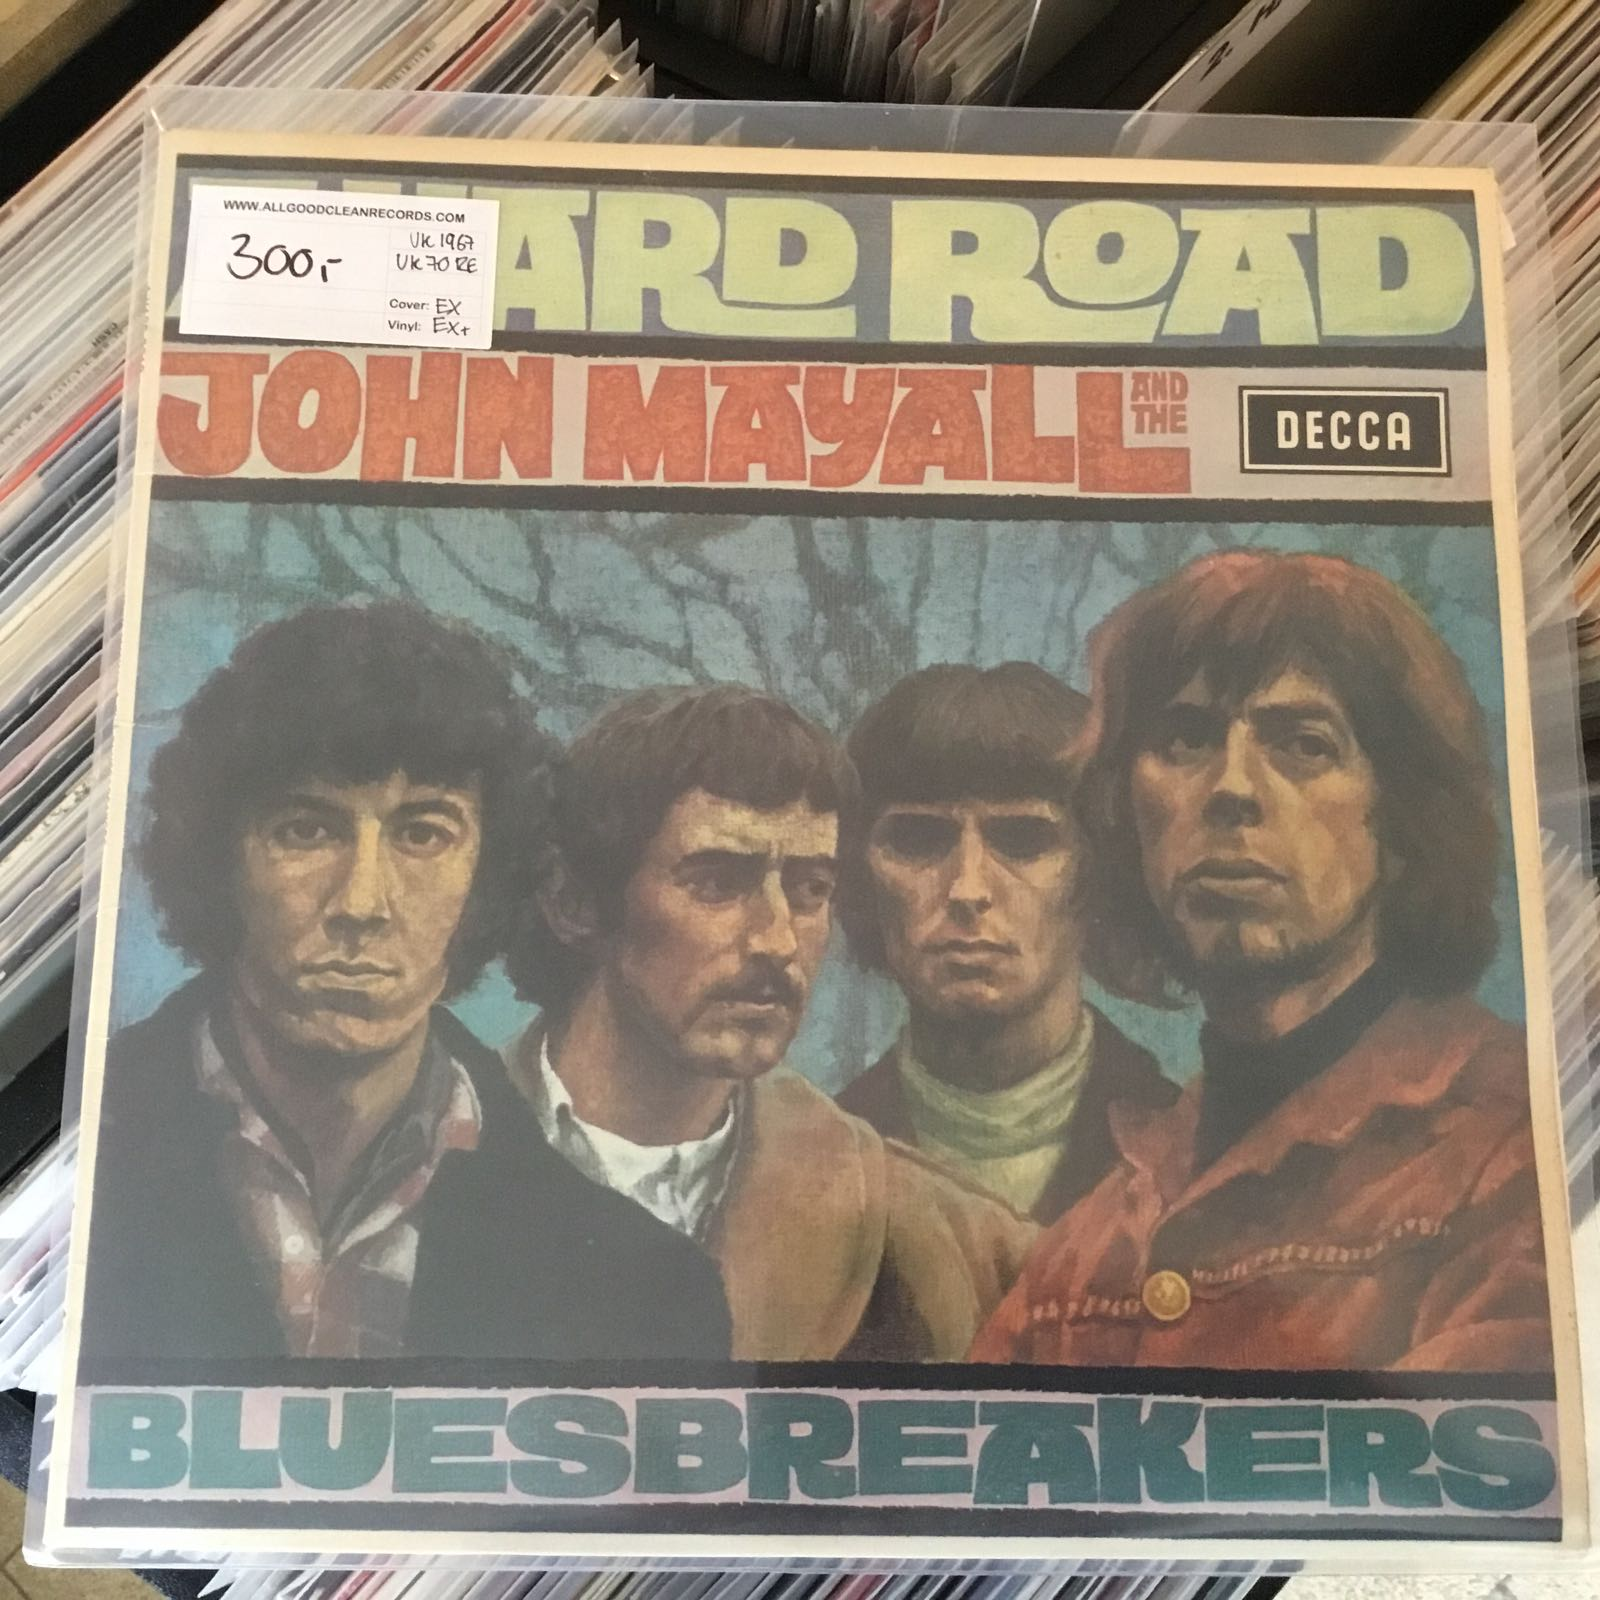 John Mayall and the Bluesbreakers – A Hard Road [LP] (2. hand)